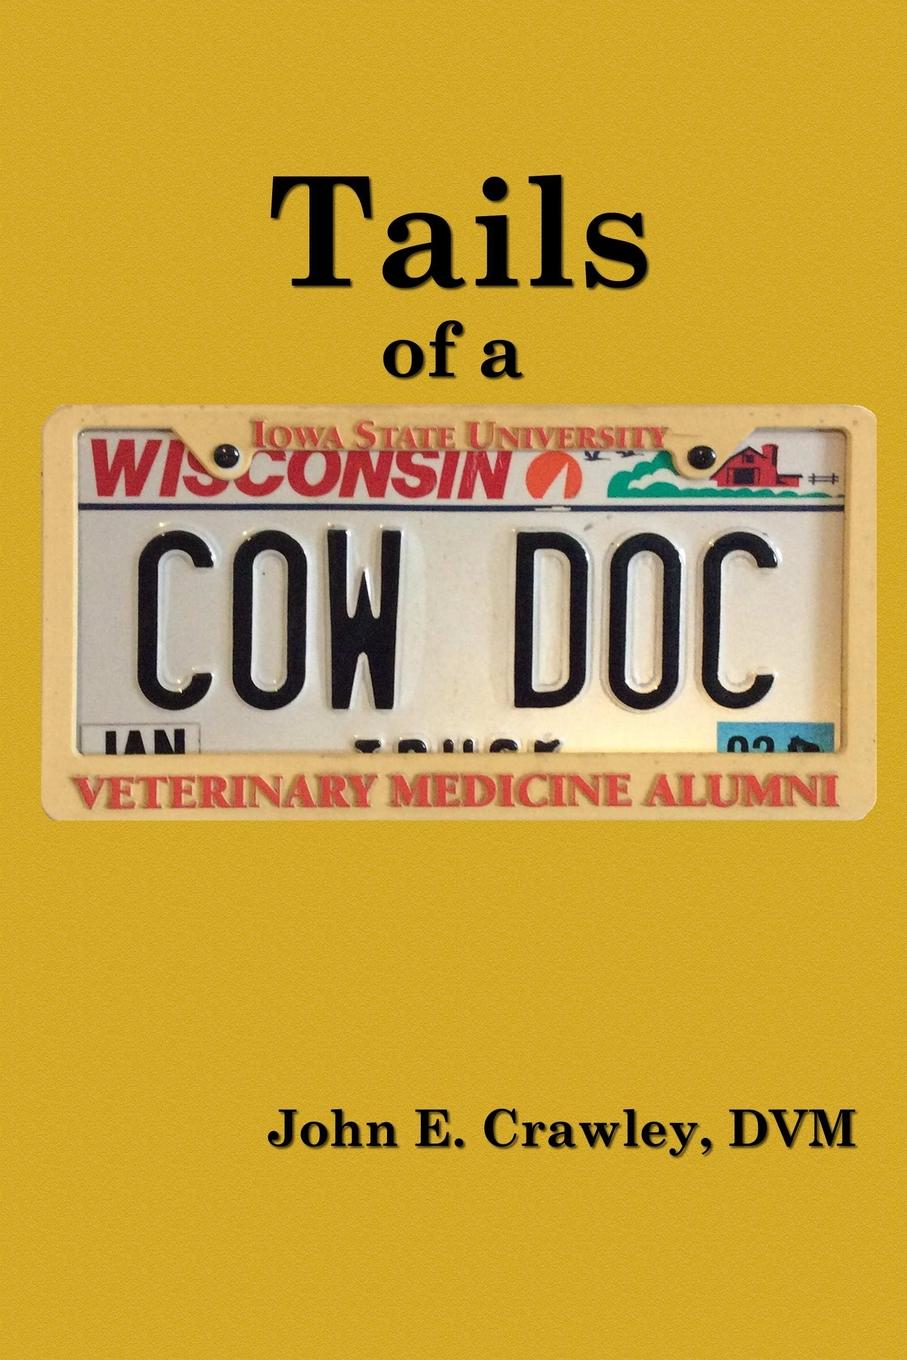 DVM John E. Crawley Tails of a Cow Doc folsom william henry carman fifty years in the northwest